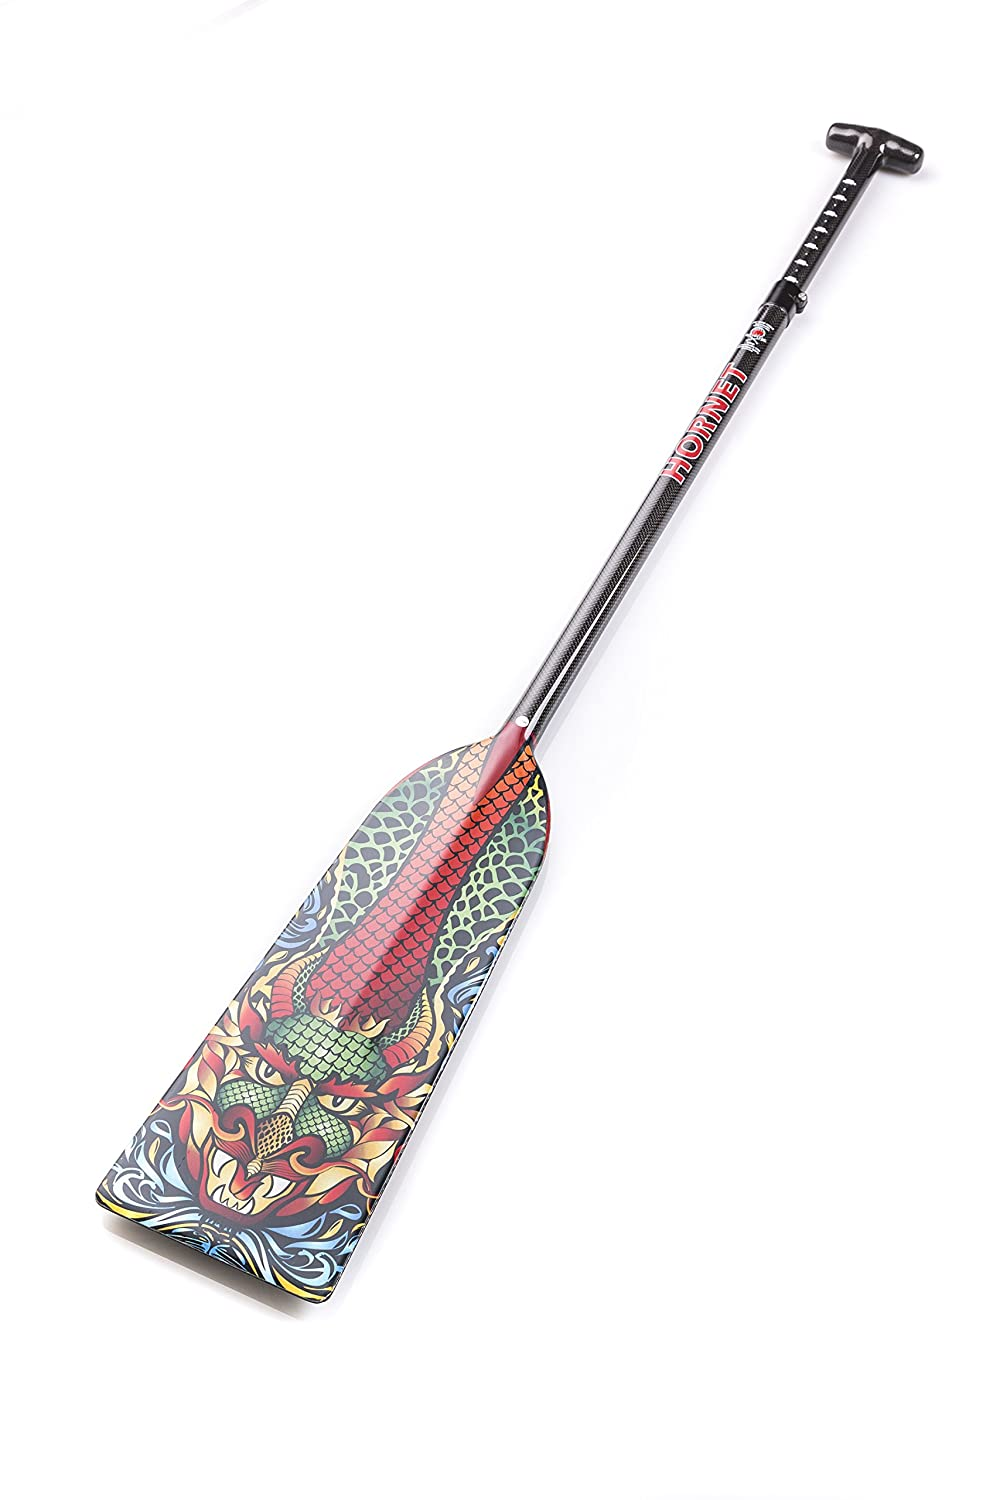 Amazon.com : Hornet Watersports Dragon Boat Paddle ...